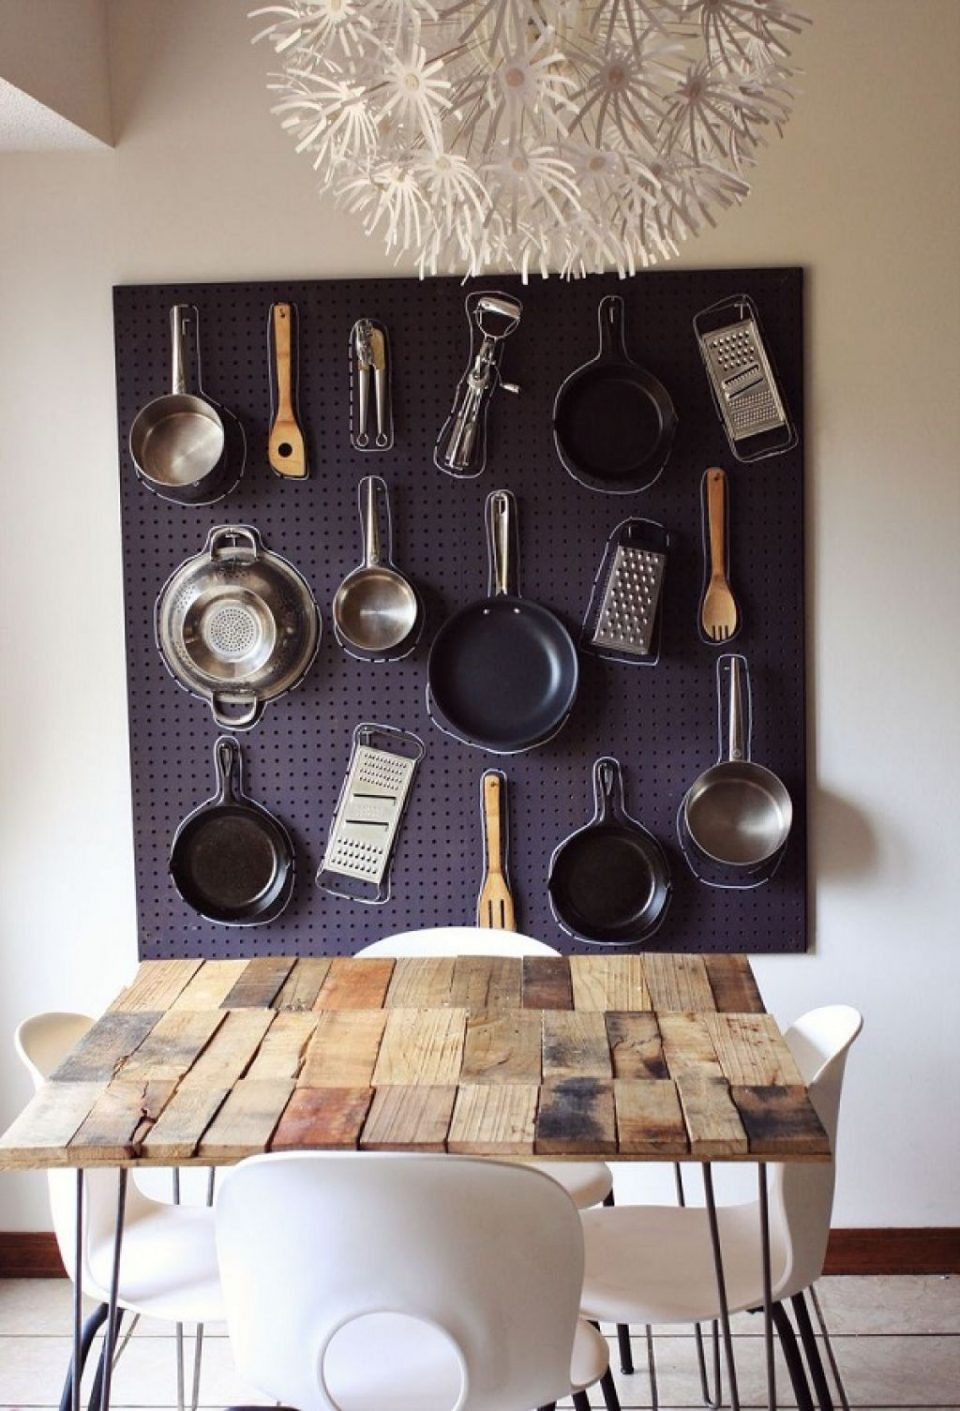 creative-hanging-storage-for-pans-and-pots